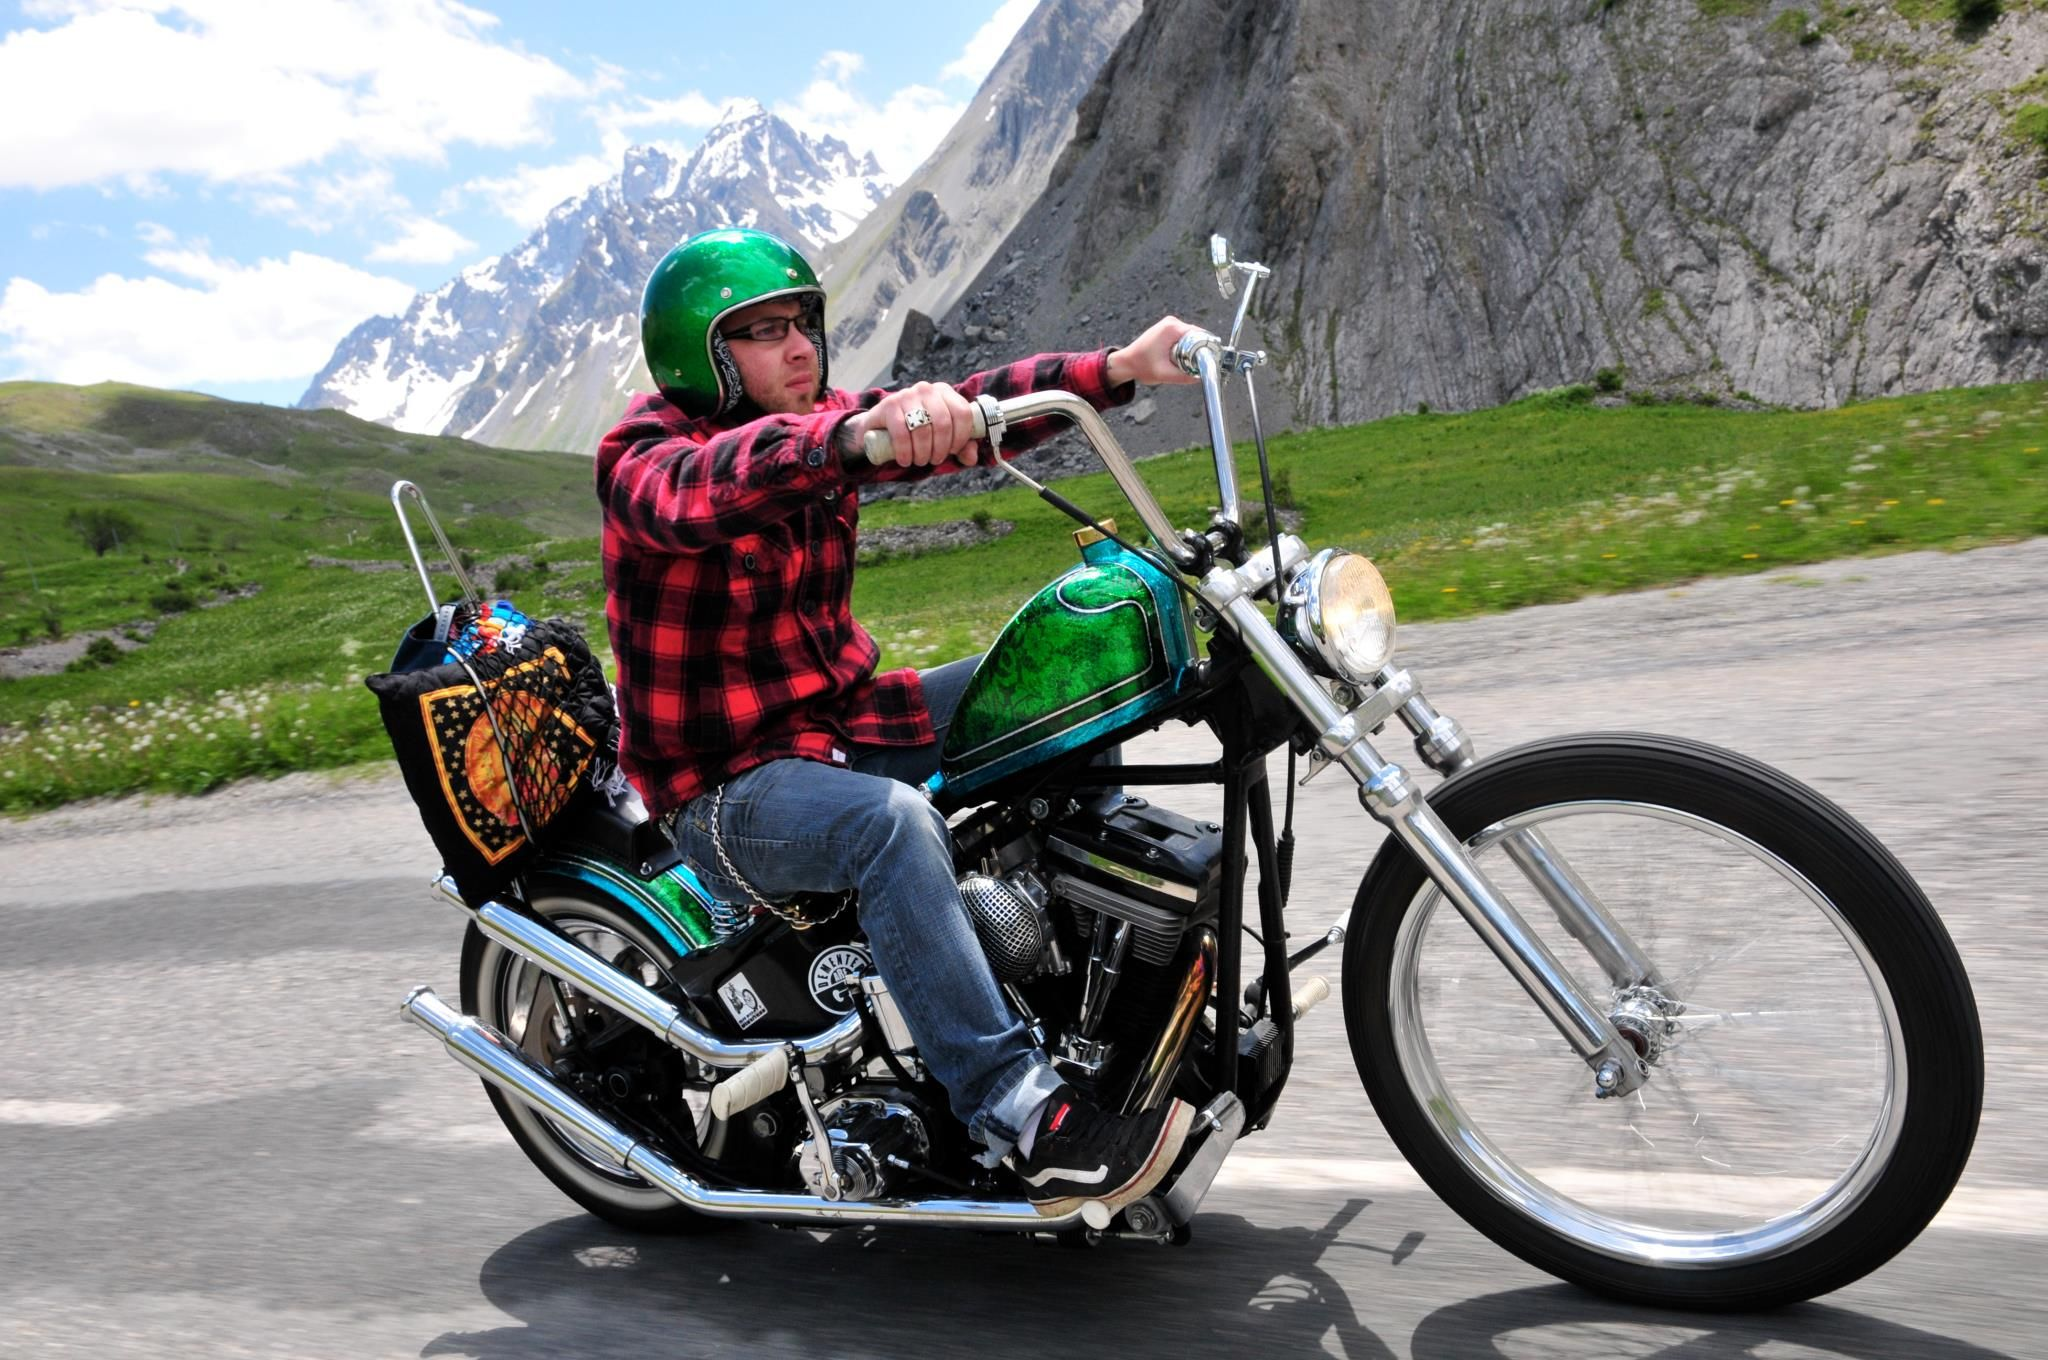 Softail - Wild Motorcycles